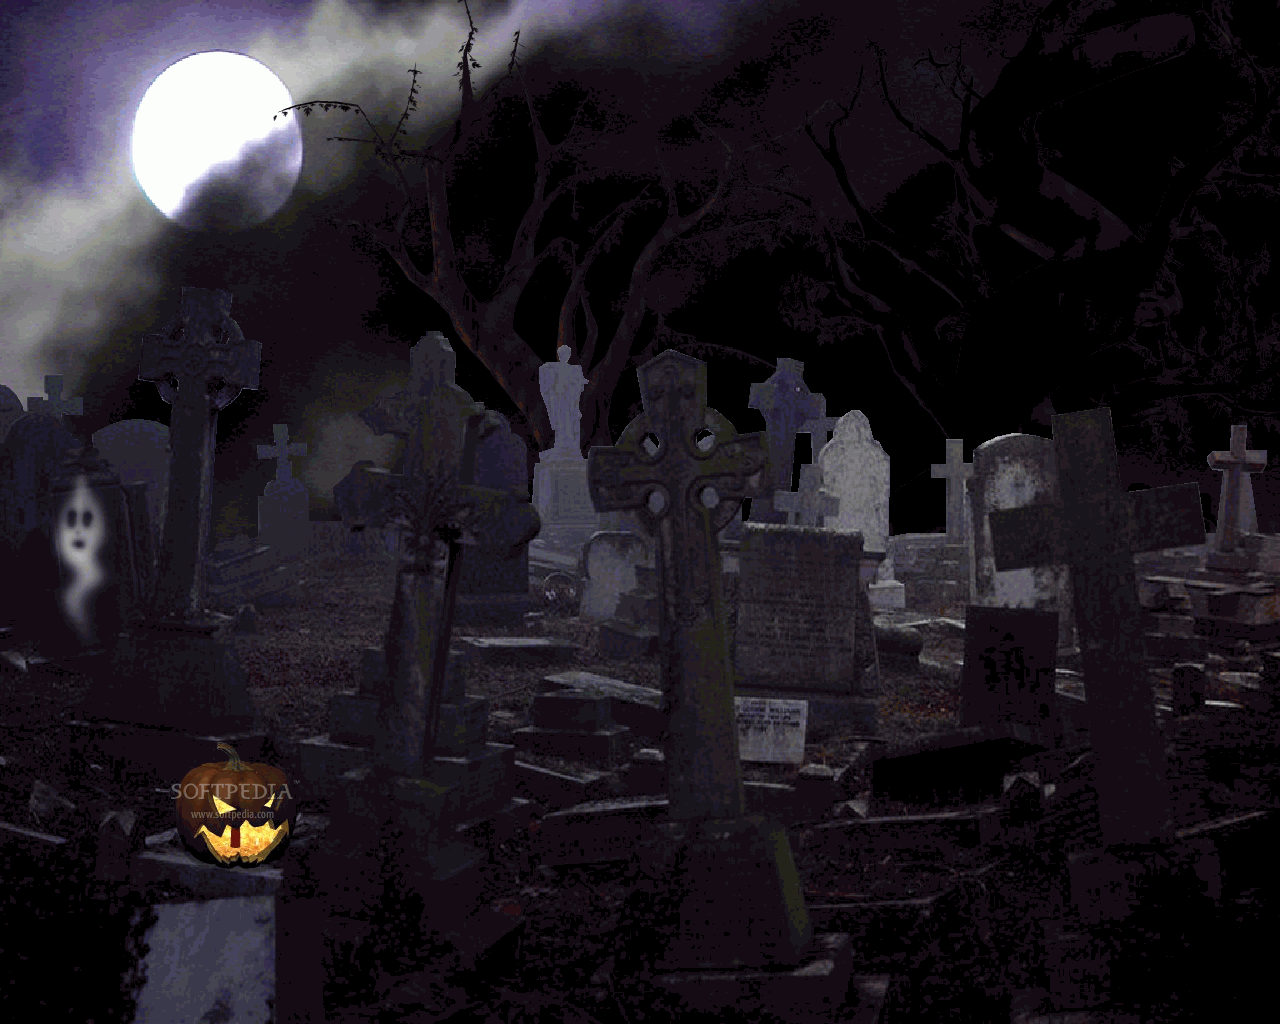 Halloween   Animated Screensaver   This is the image displayed by 1280x1024